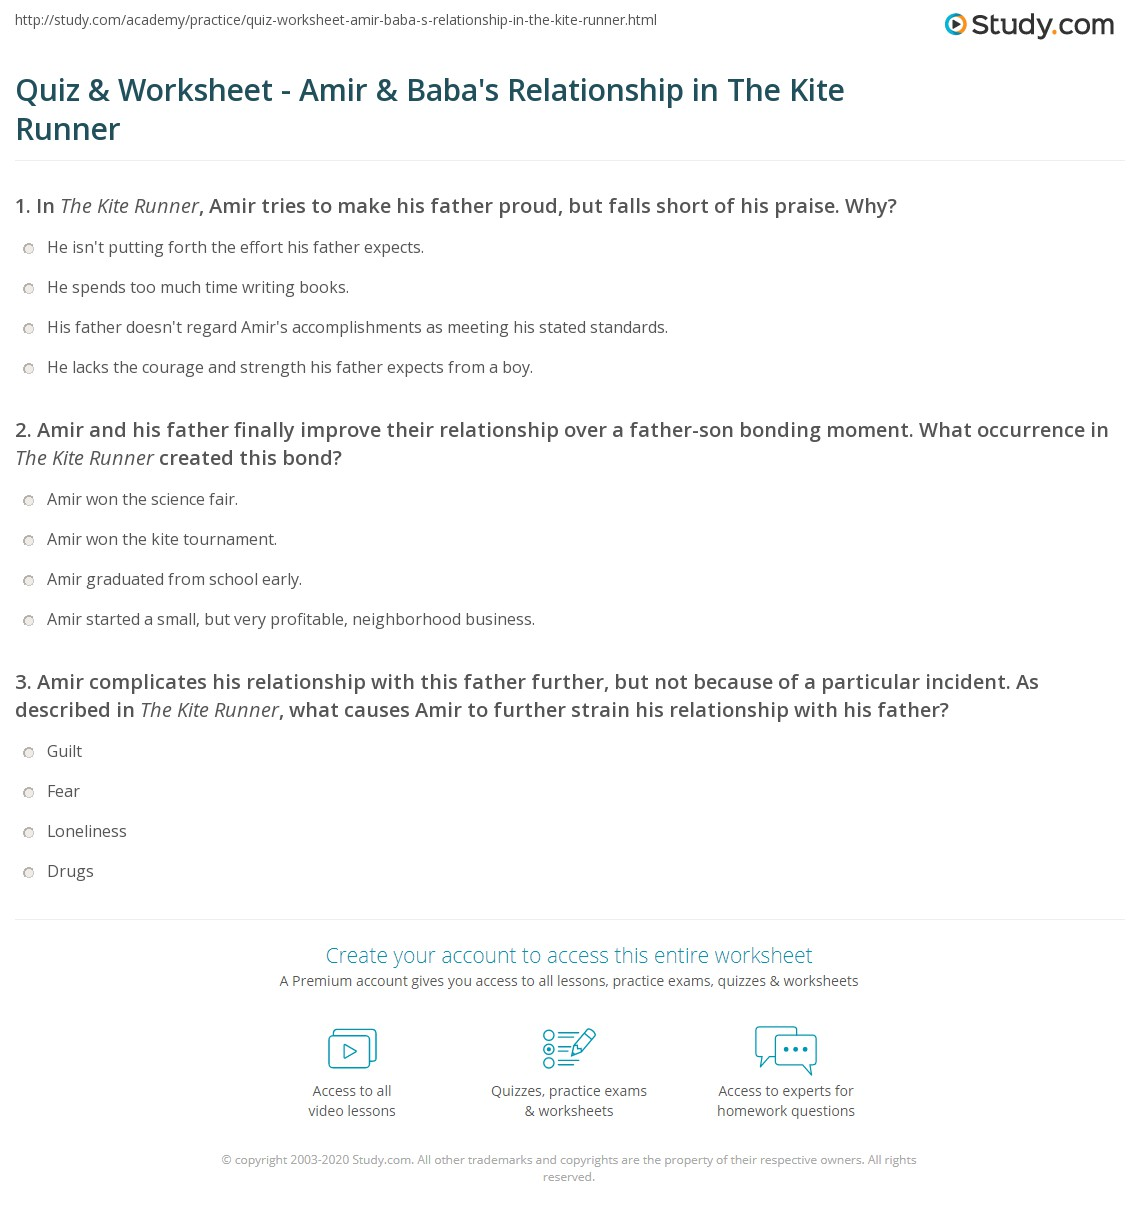 quiz worksheet amir baba s relationship in the kite runner print relationship between amir baba in the kite runner worksheet